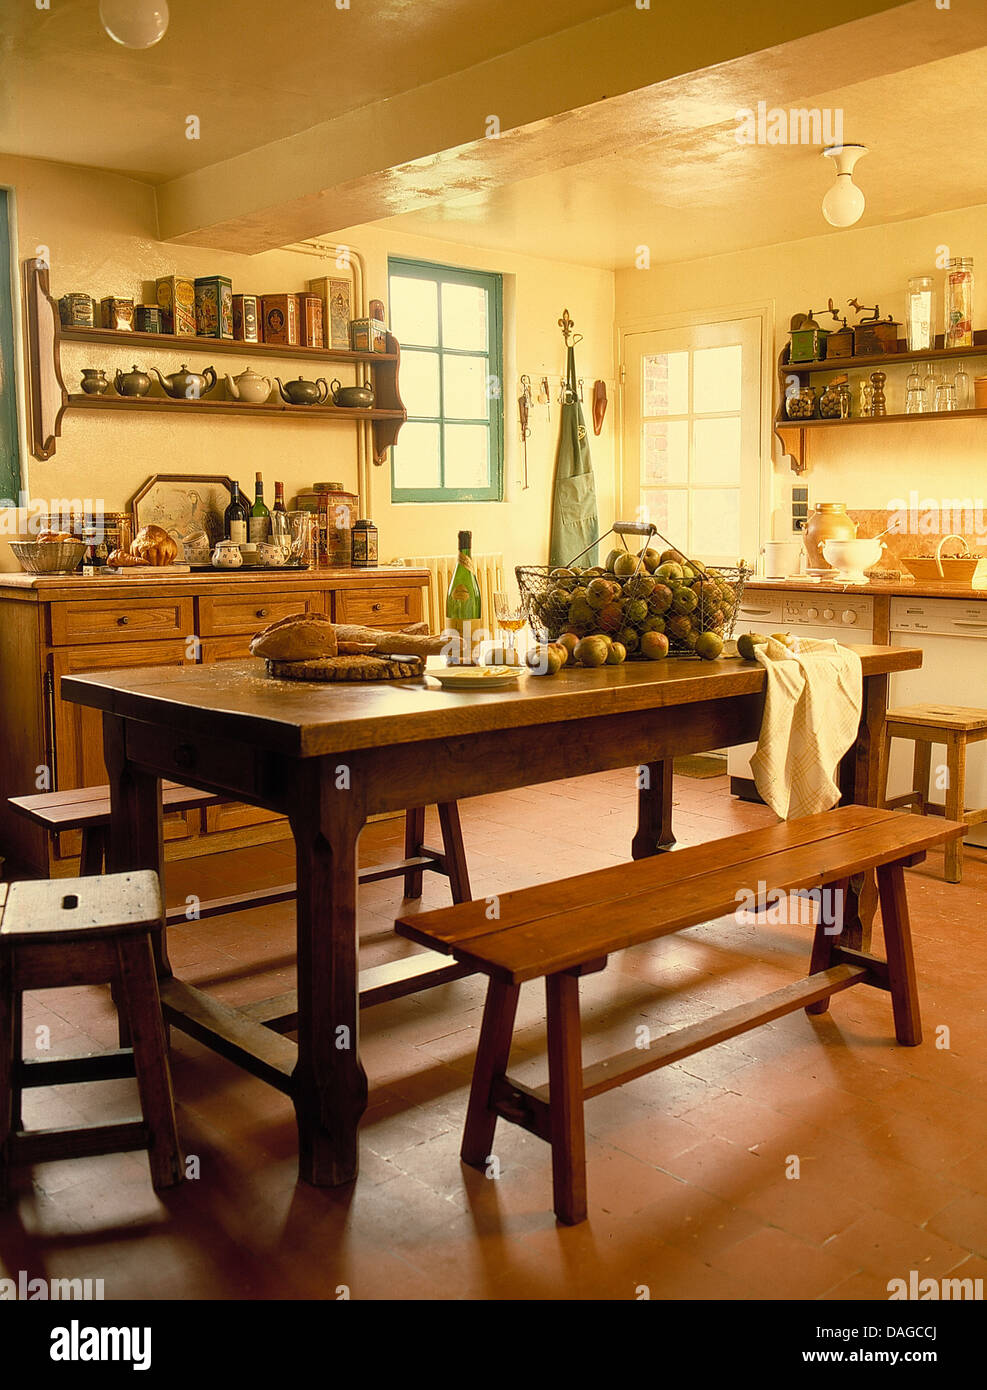 Pleasing Wooden Table And Benches In French Country Kitchen With Unemploymentrelief Wooden Chair Designs For Living Room Unemploymentrelieforg